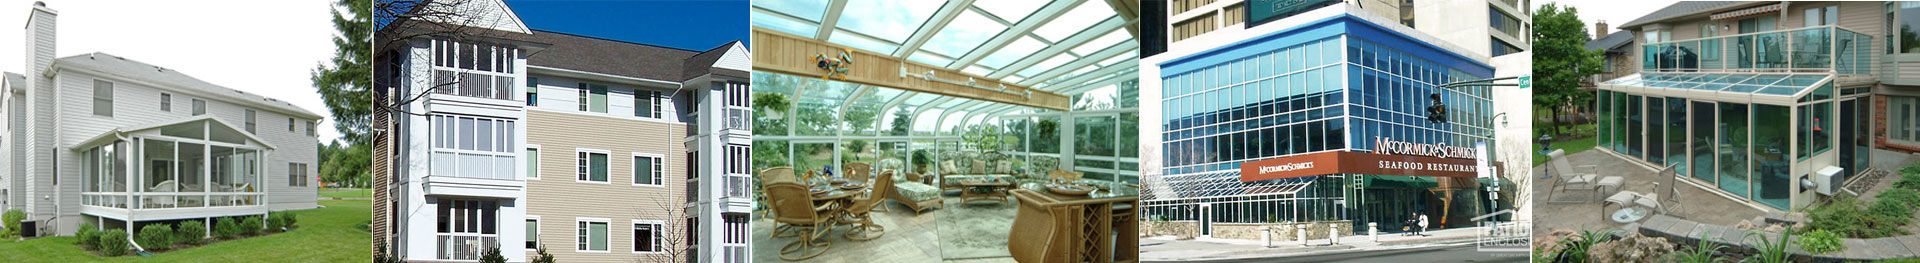 Kitchener Sunrooms